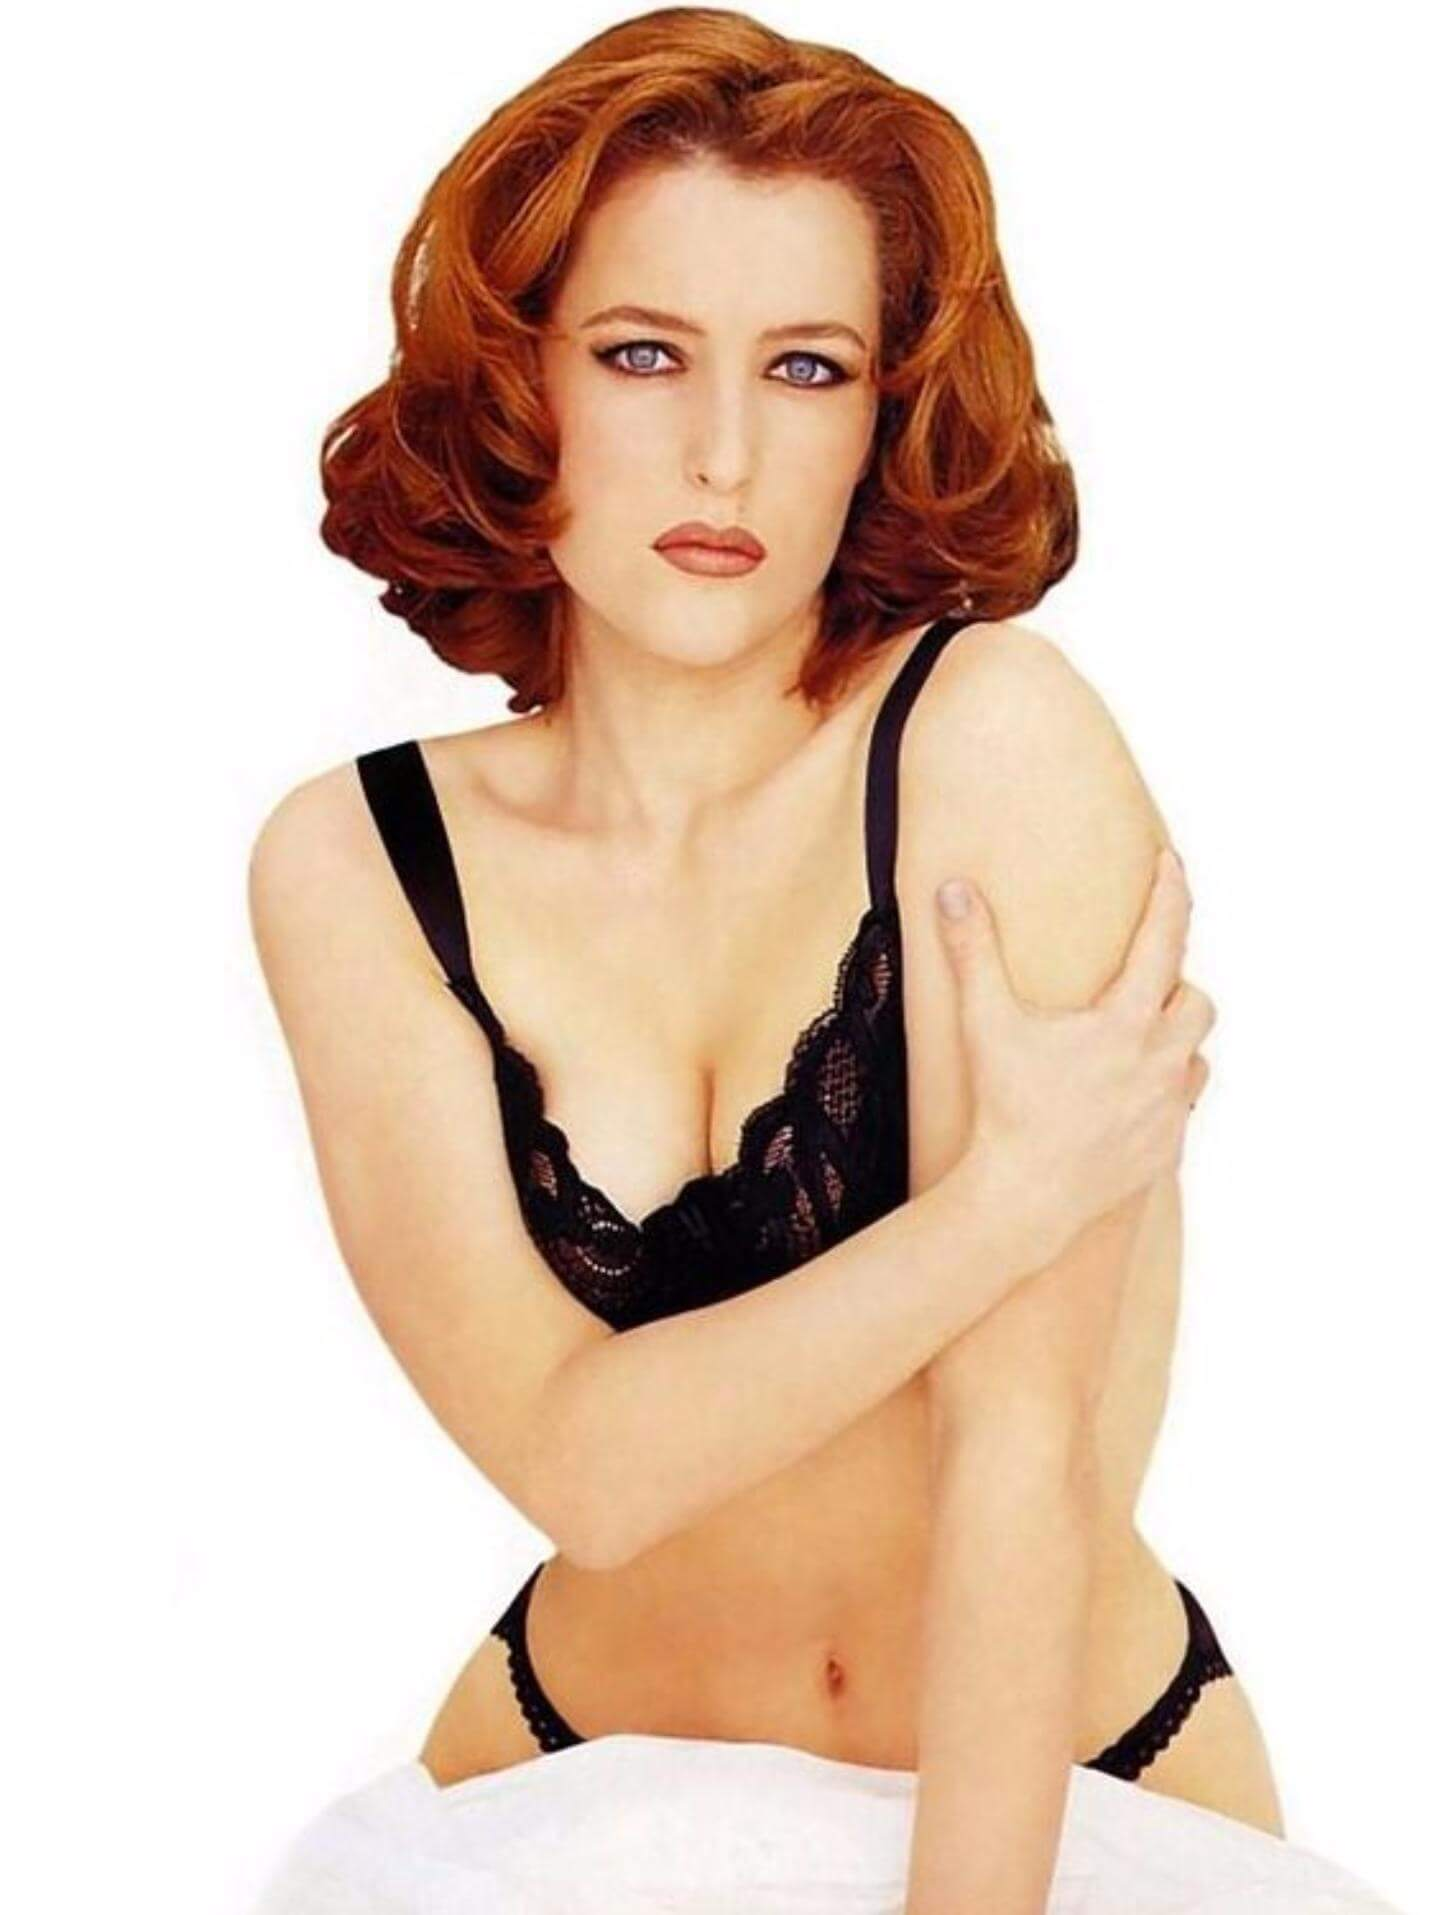 Gillian Anderson sexy bikiny pictures